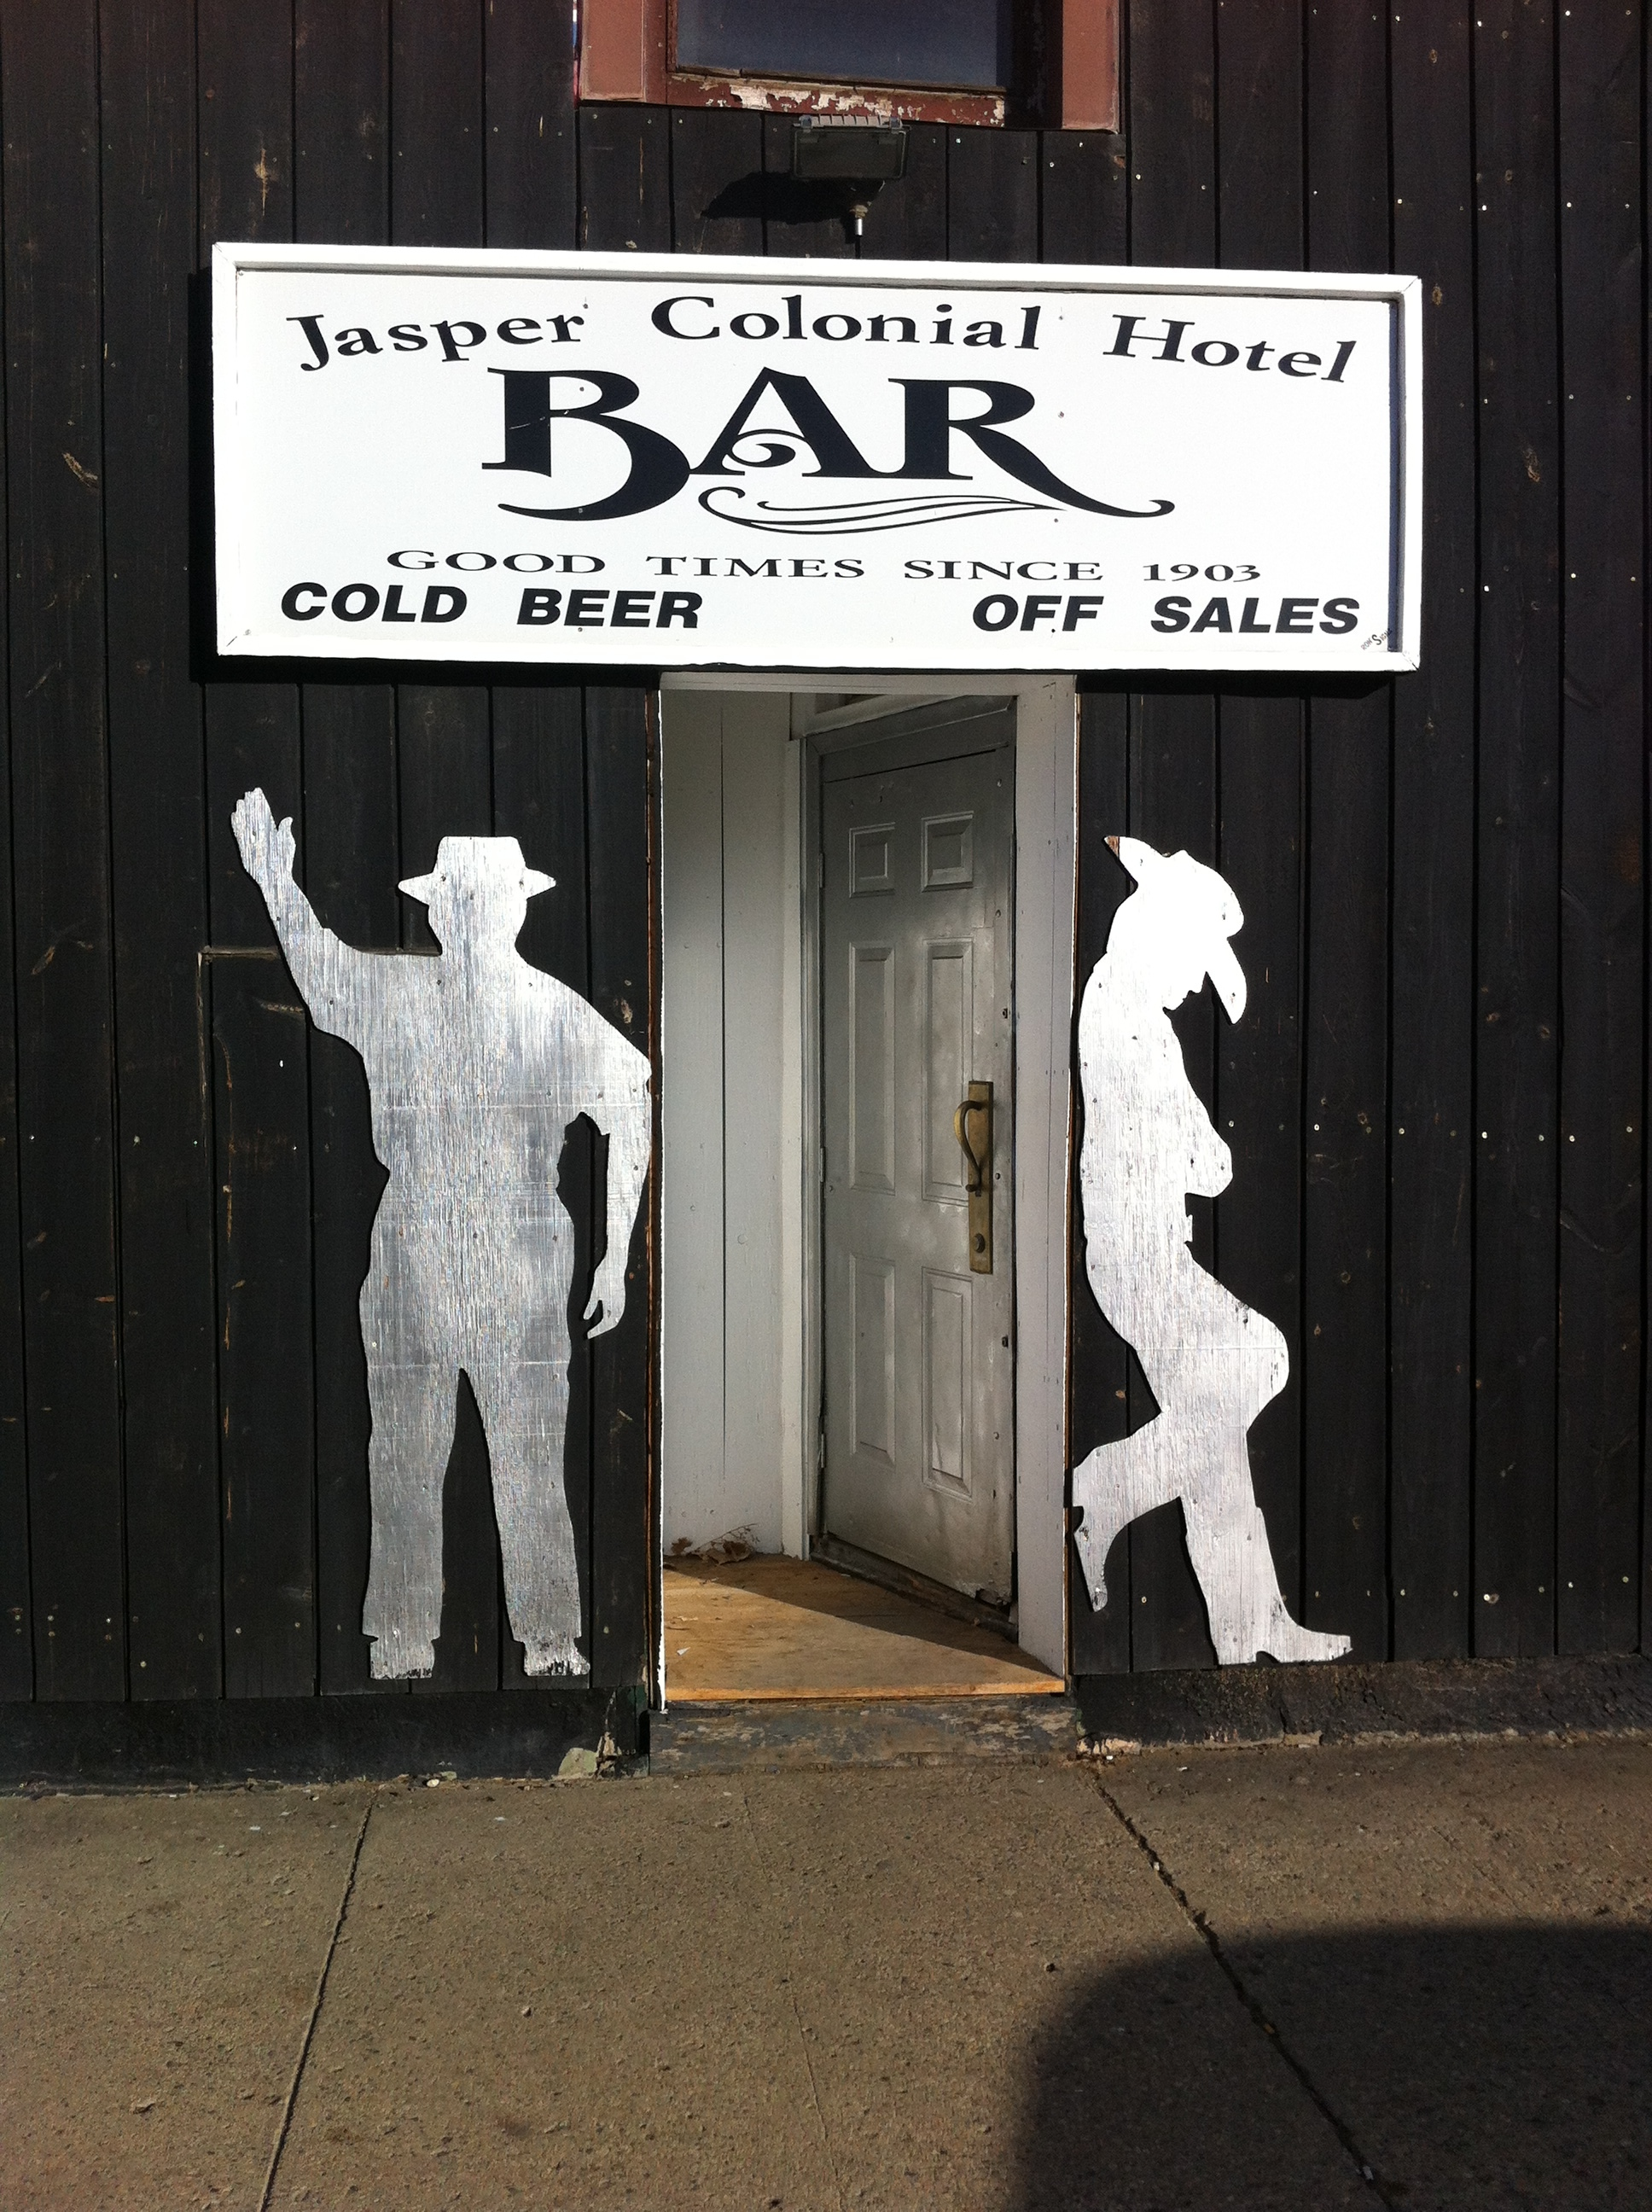 Great welcoming entrance to the historic Jasper Colonial Hotel bar...